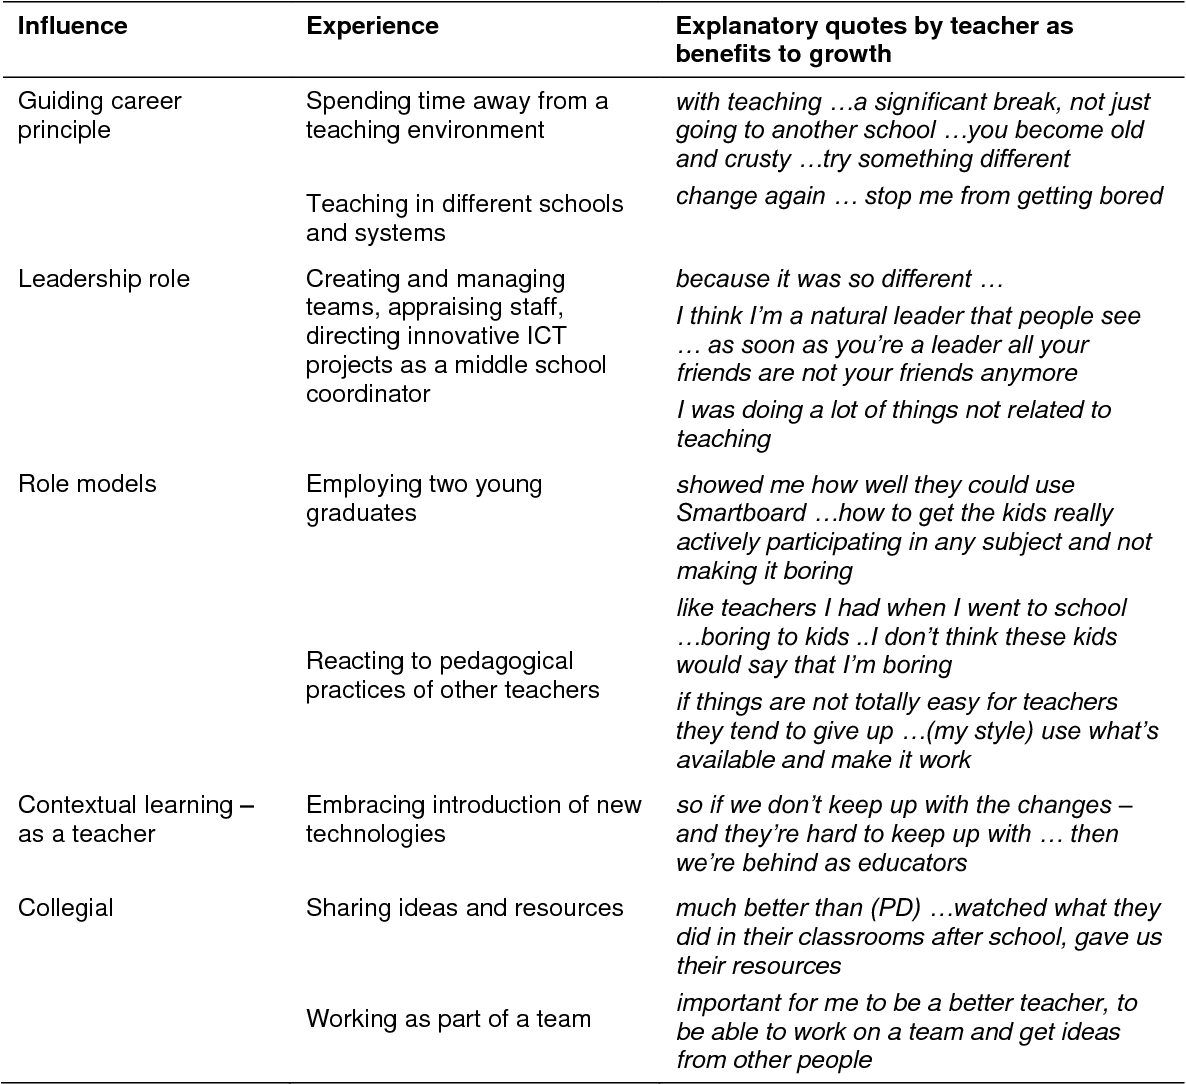 Table 5.7 Perceived significant influences on teaching role